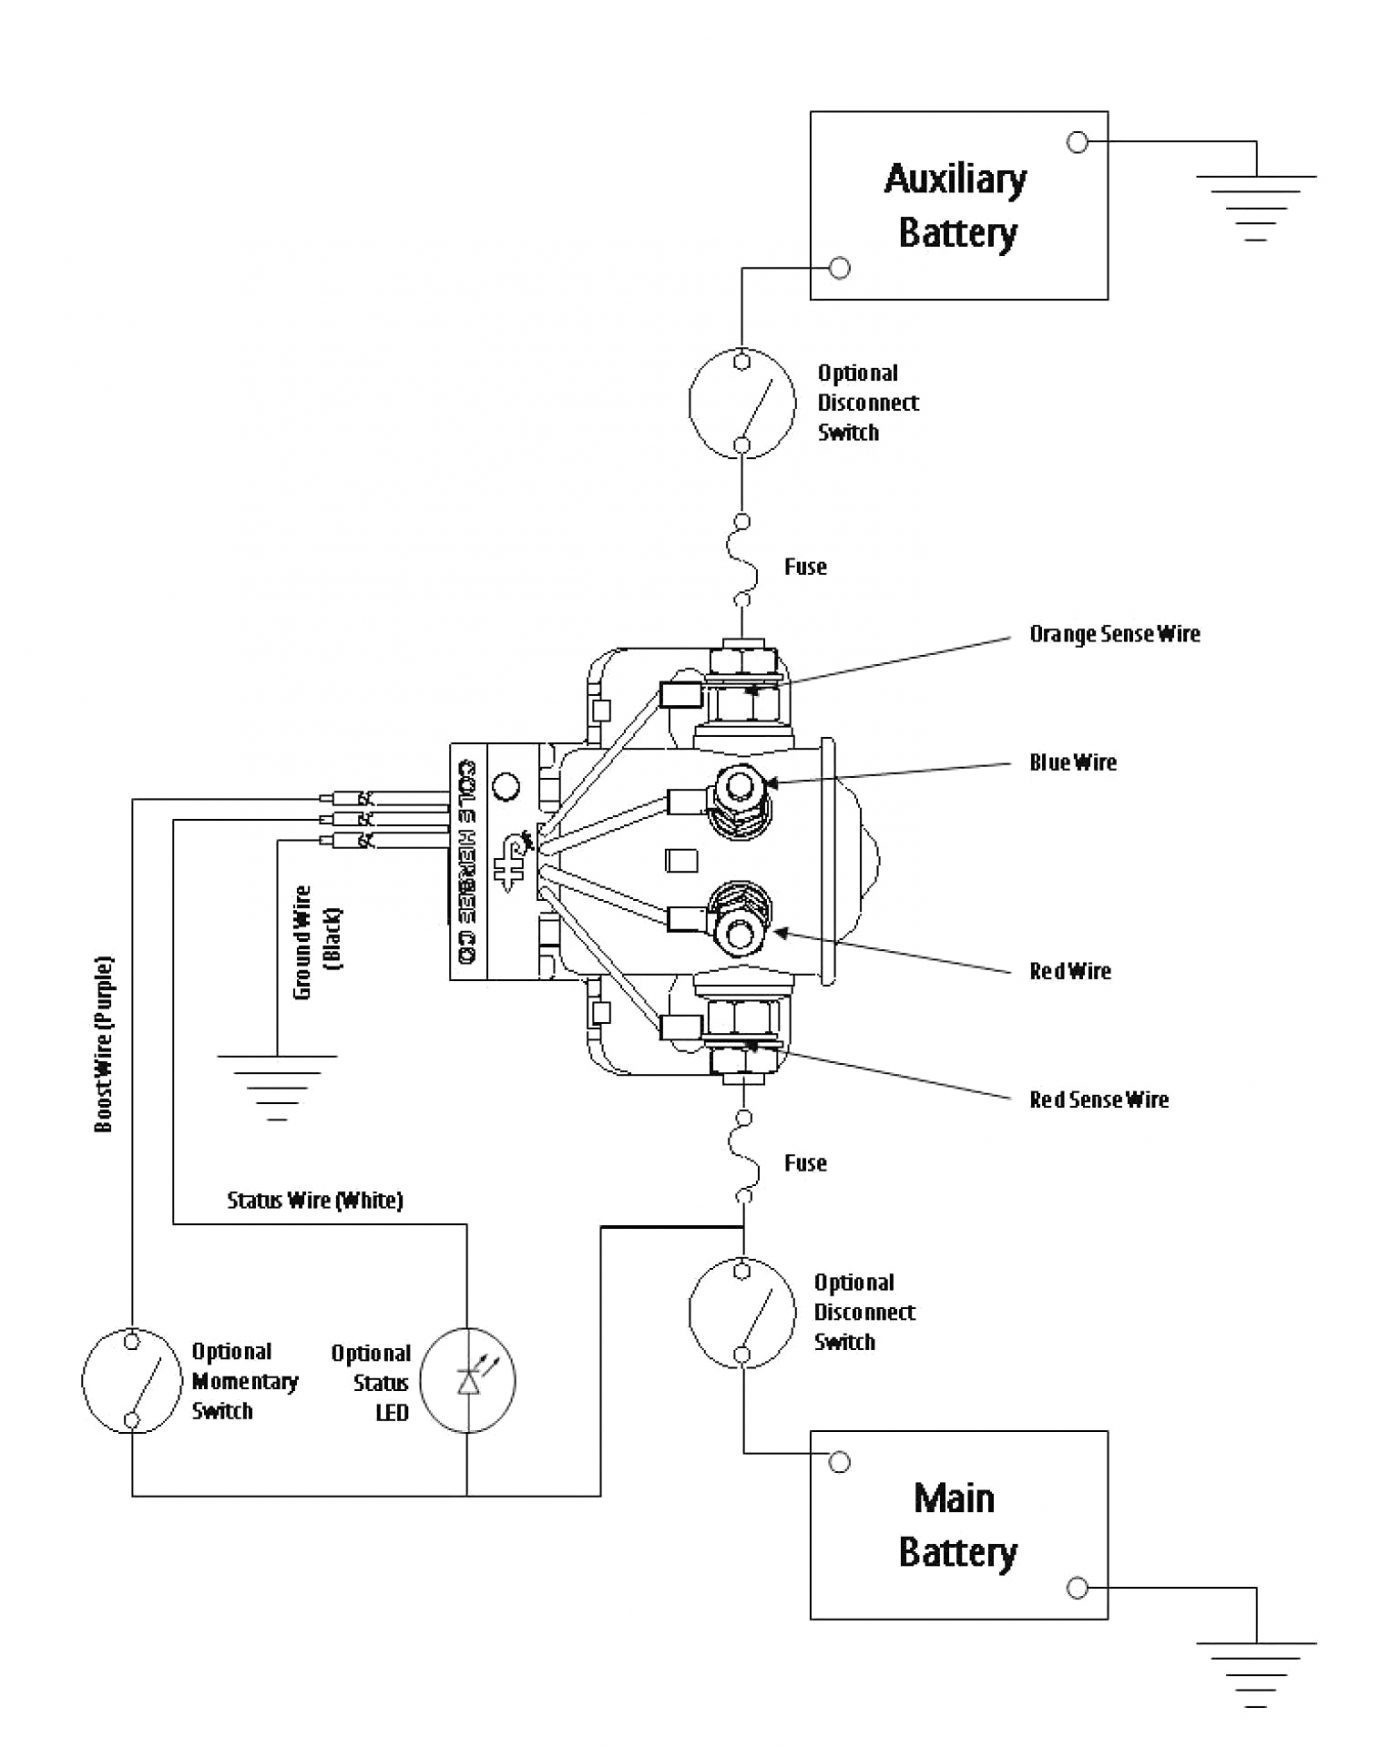 Wiring Diagram For Isolator Switch Save Rv Battery Disconnect Switch Wiring Diagram New Battery Switch